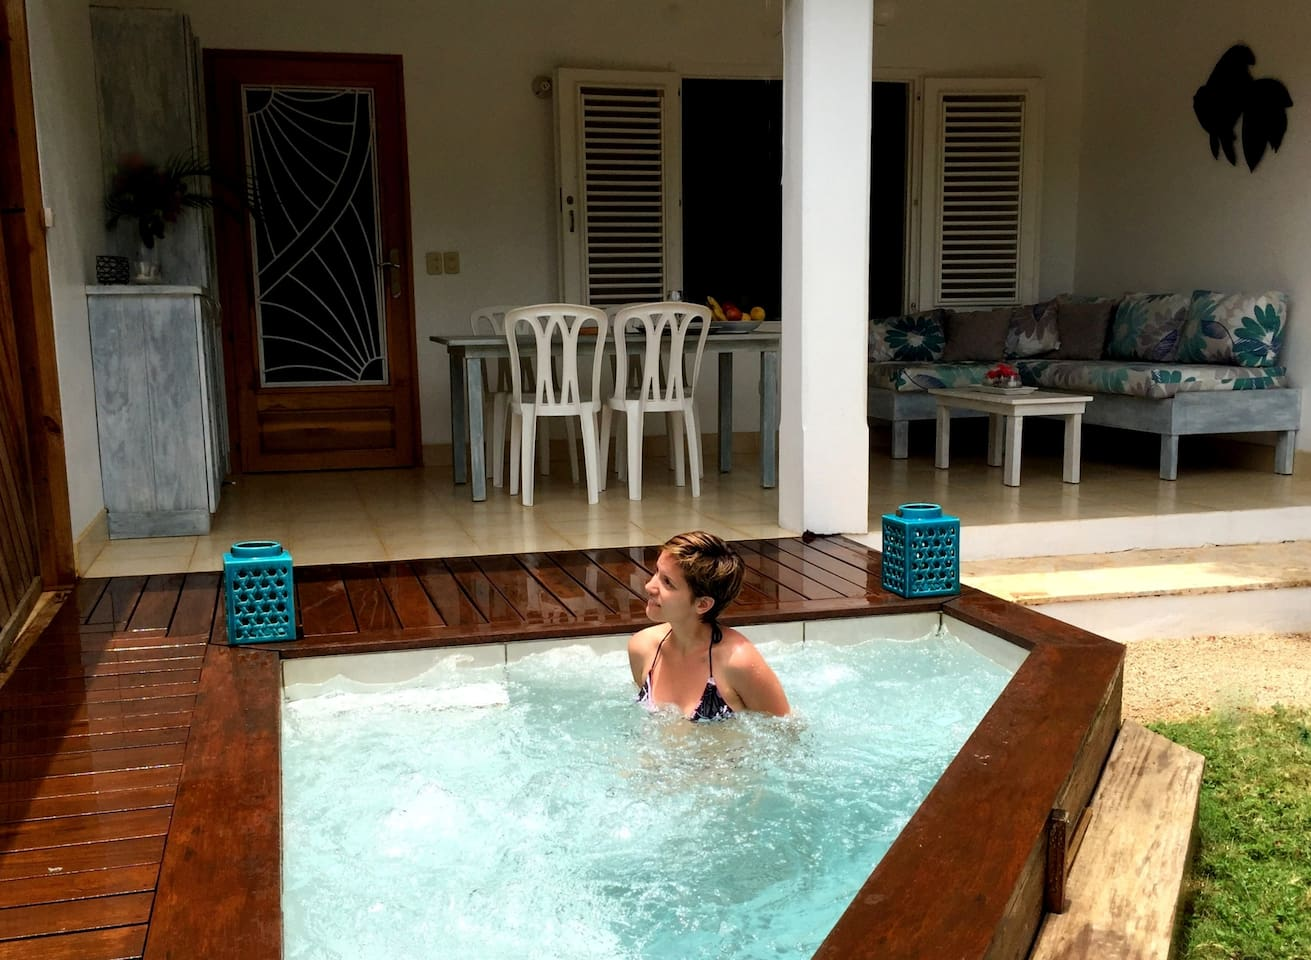 Profitez du jacuzzi privé au retour de la plage .  Enjoy the private jacuzzi after the  beach